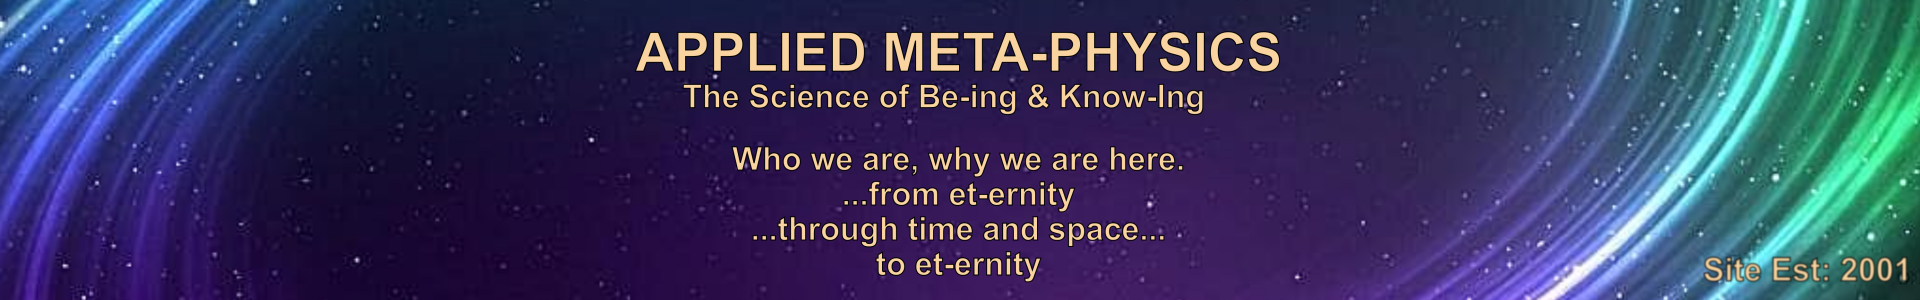 Applied Meta-Physics the Science of